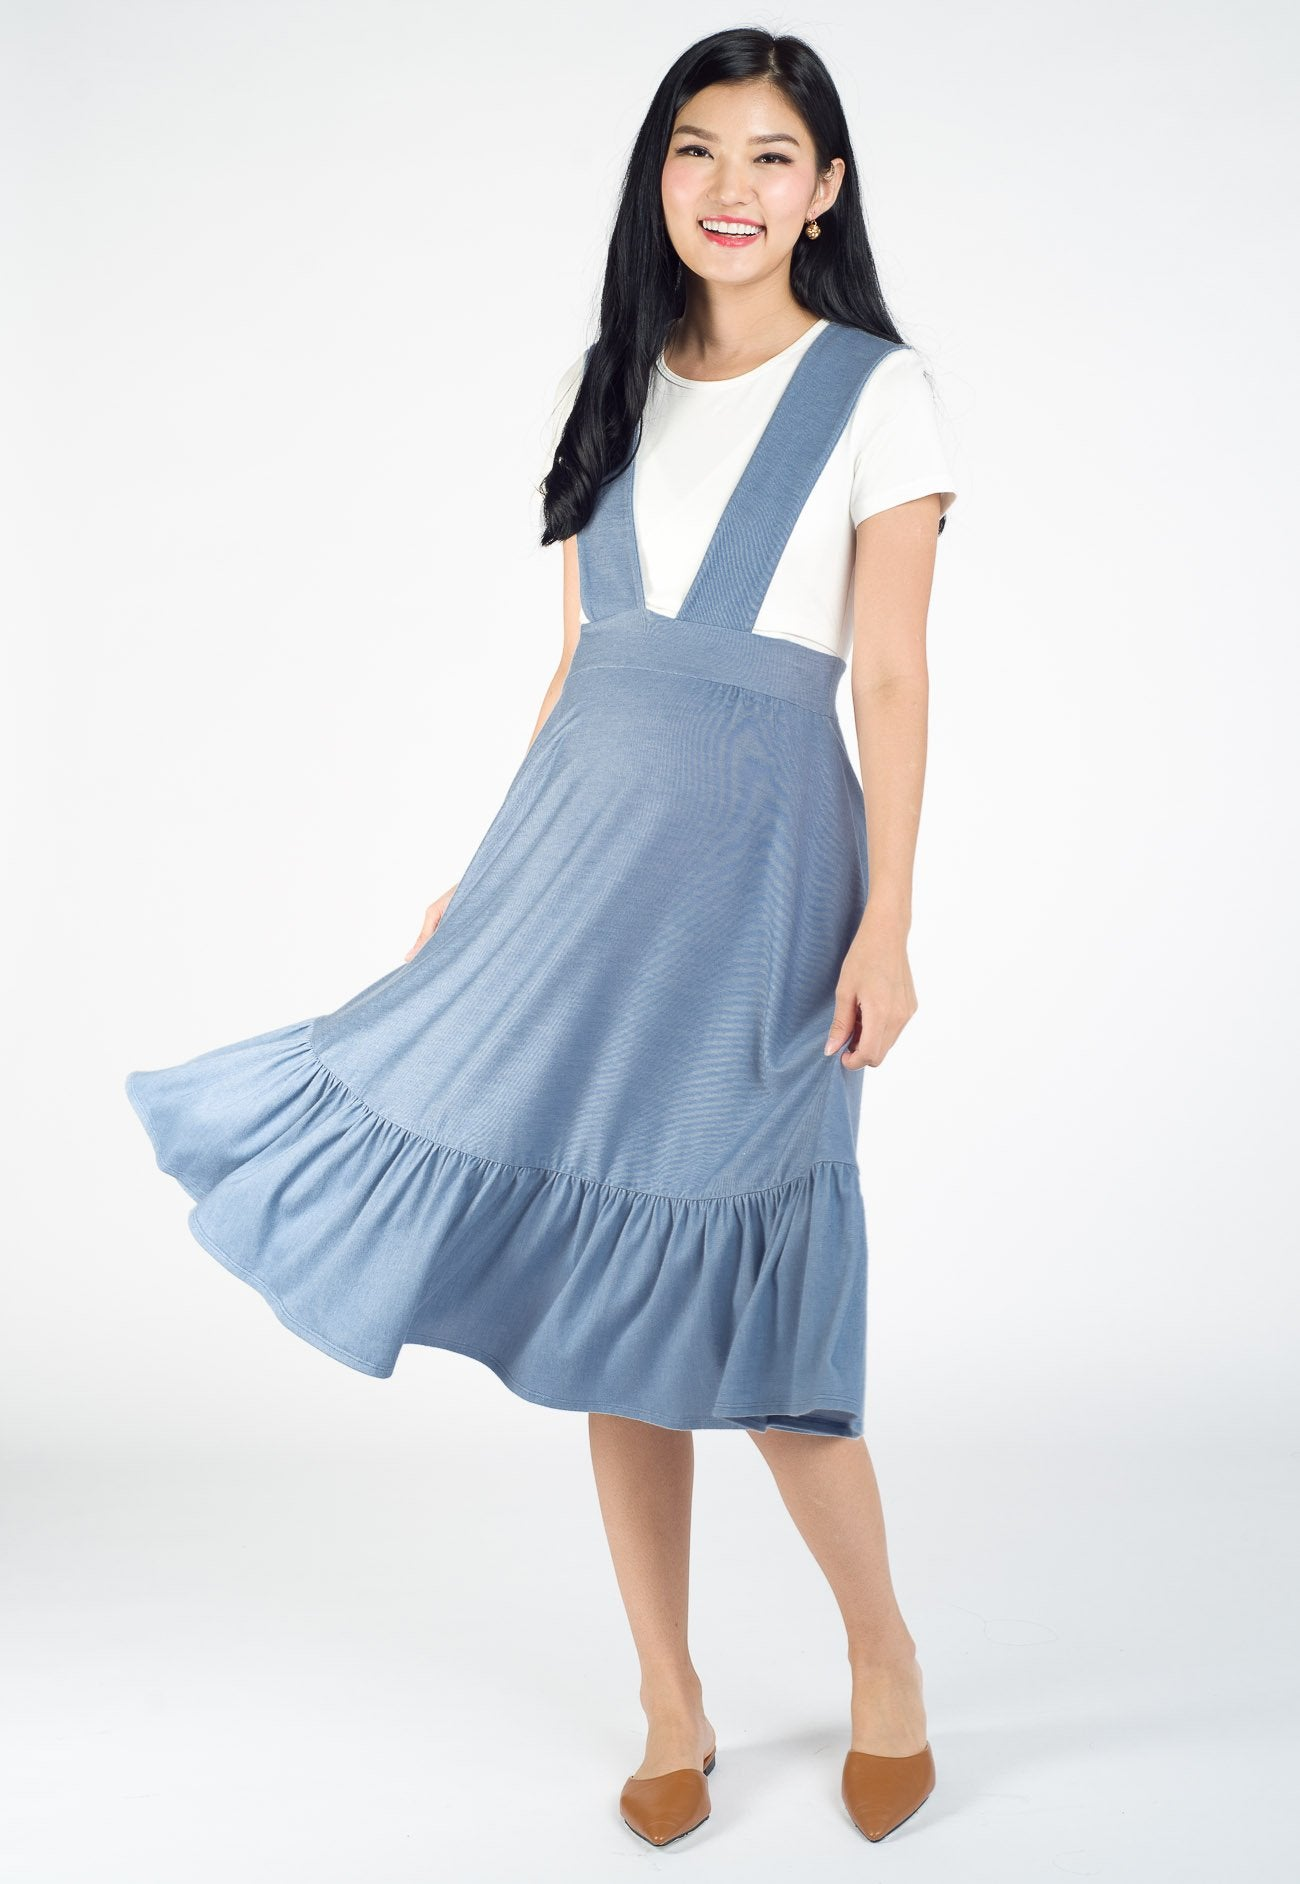 Kyle Overall Nursing Dress in Blue Nursing Wear Mothercot